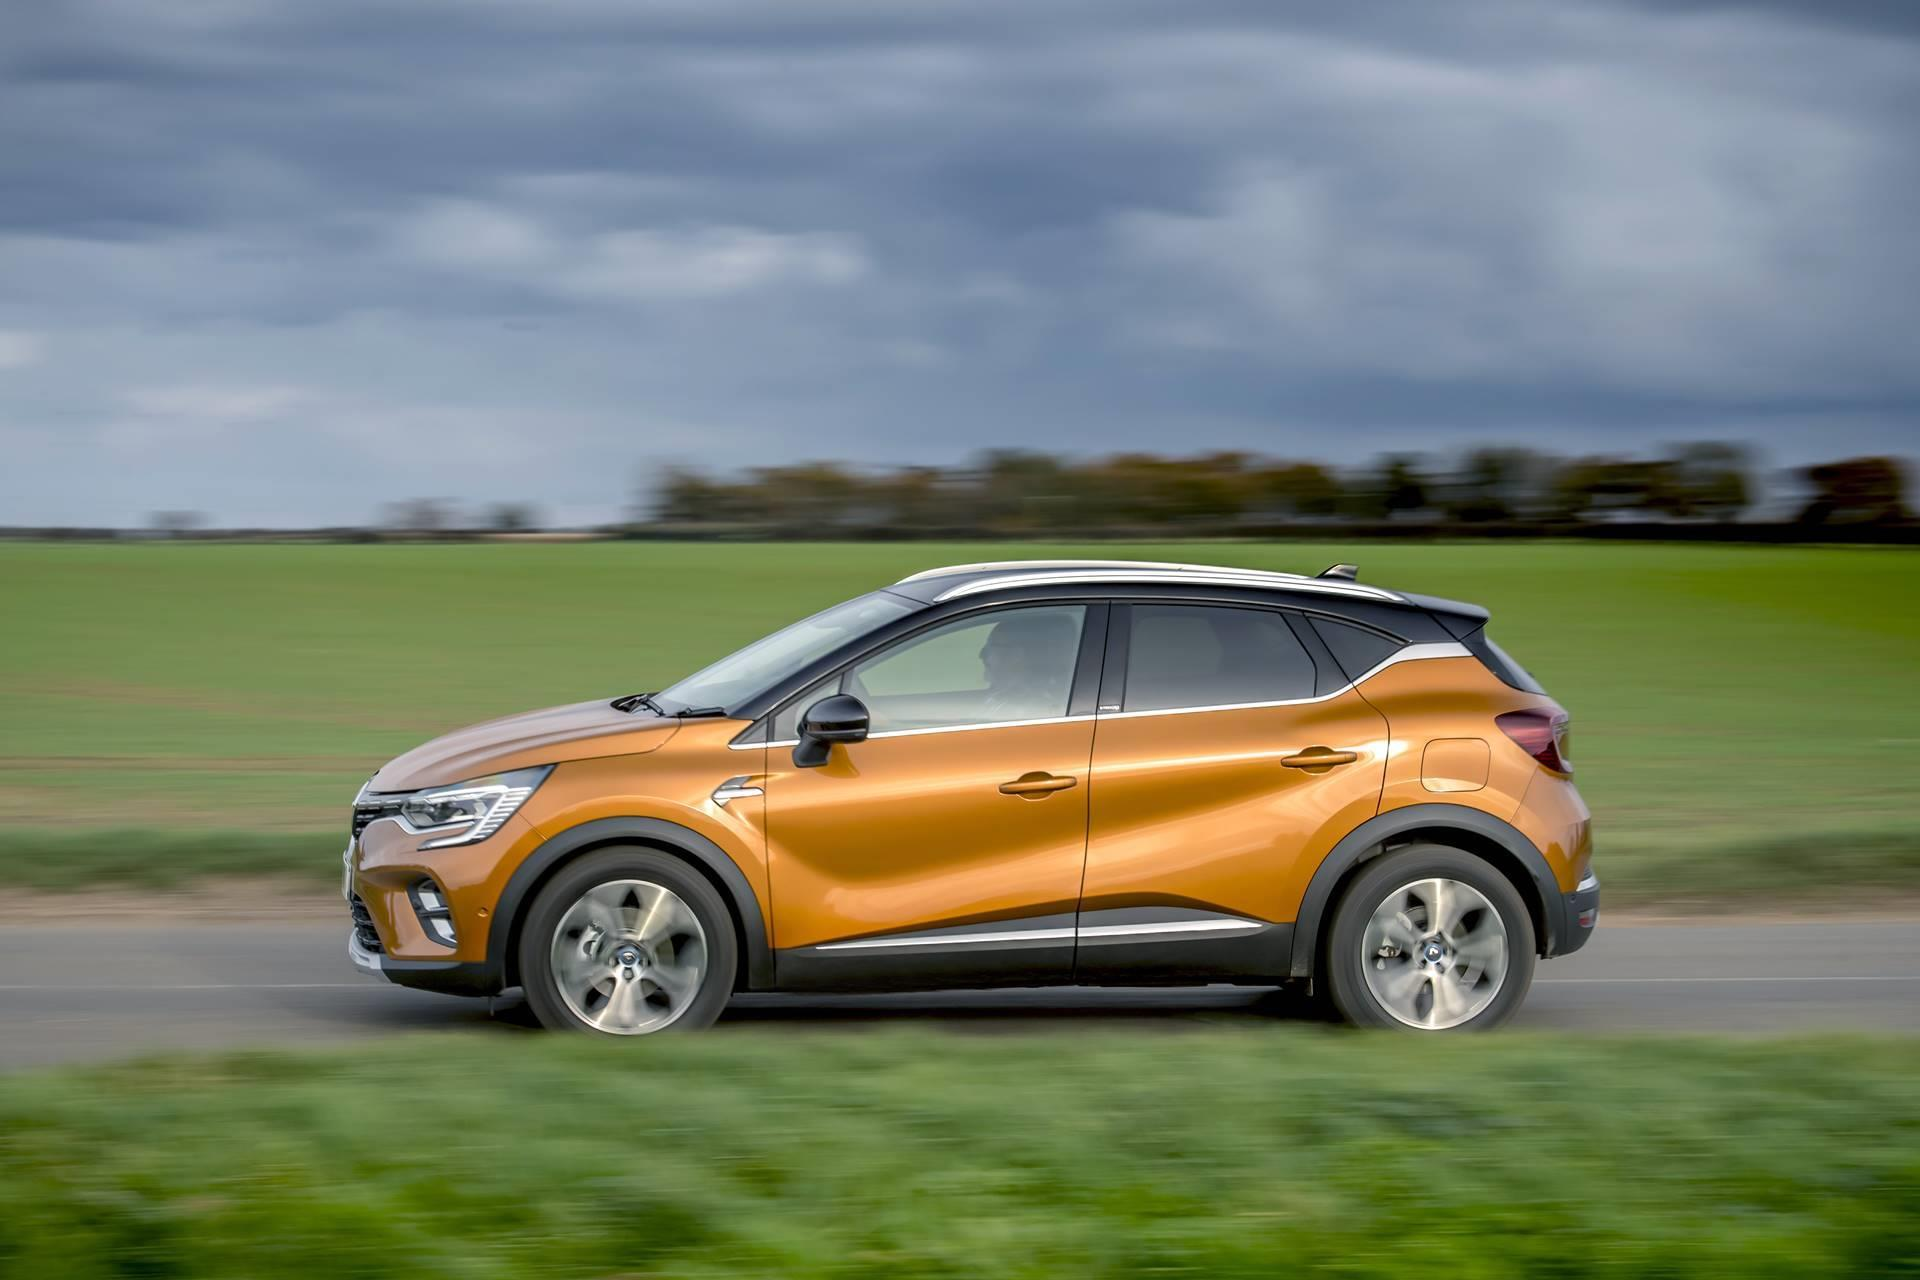 2021 Renault Captur E-TECH Plug-in Hybrid